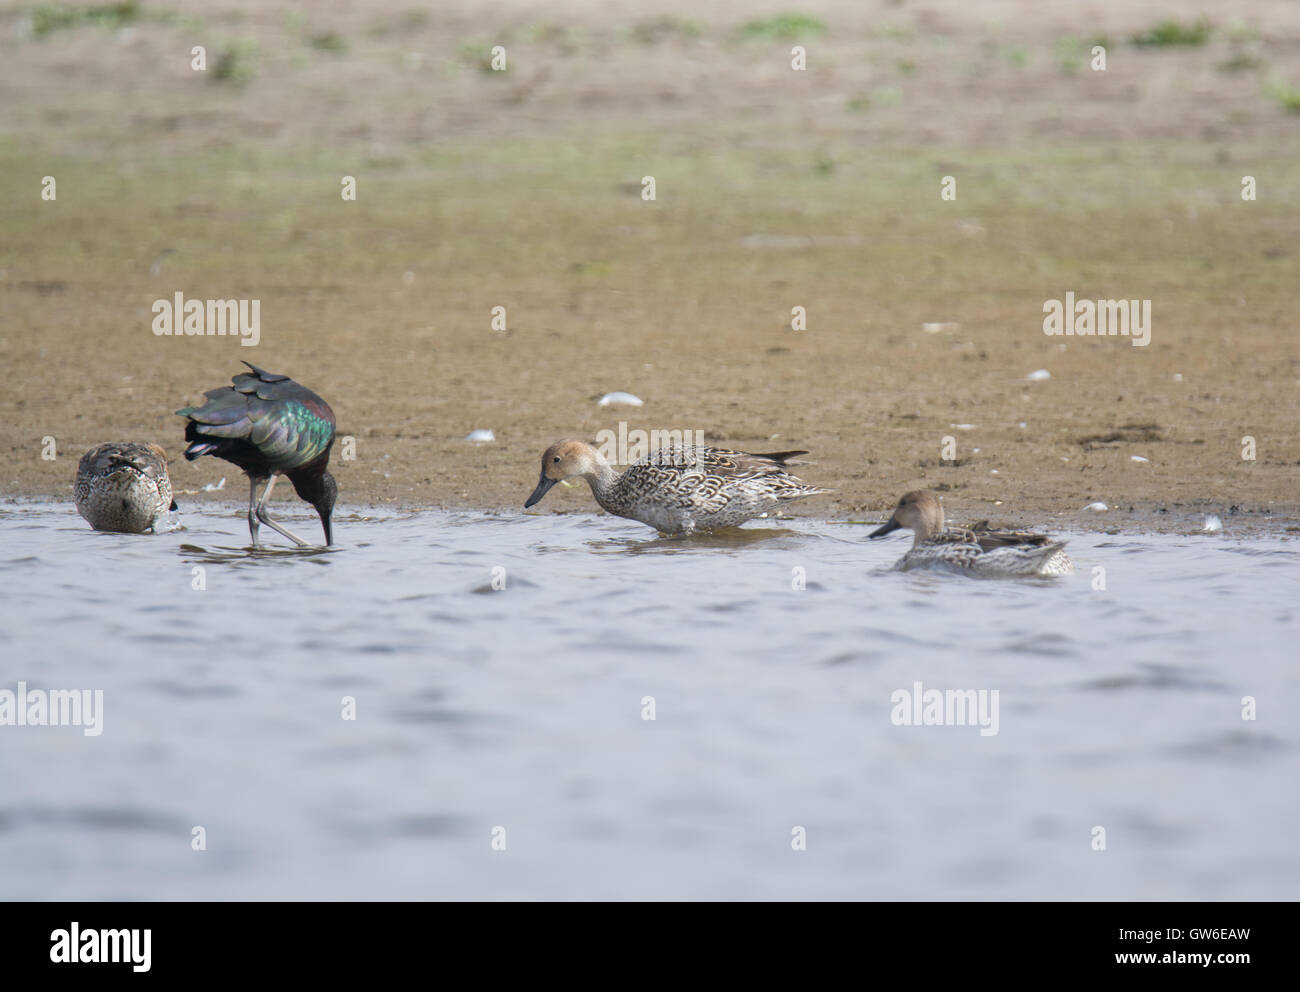 Duck on a water in the Wilderness of Egypt - Stock Image